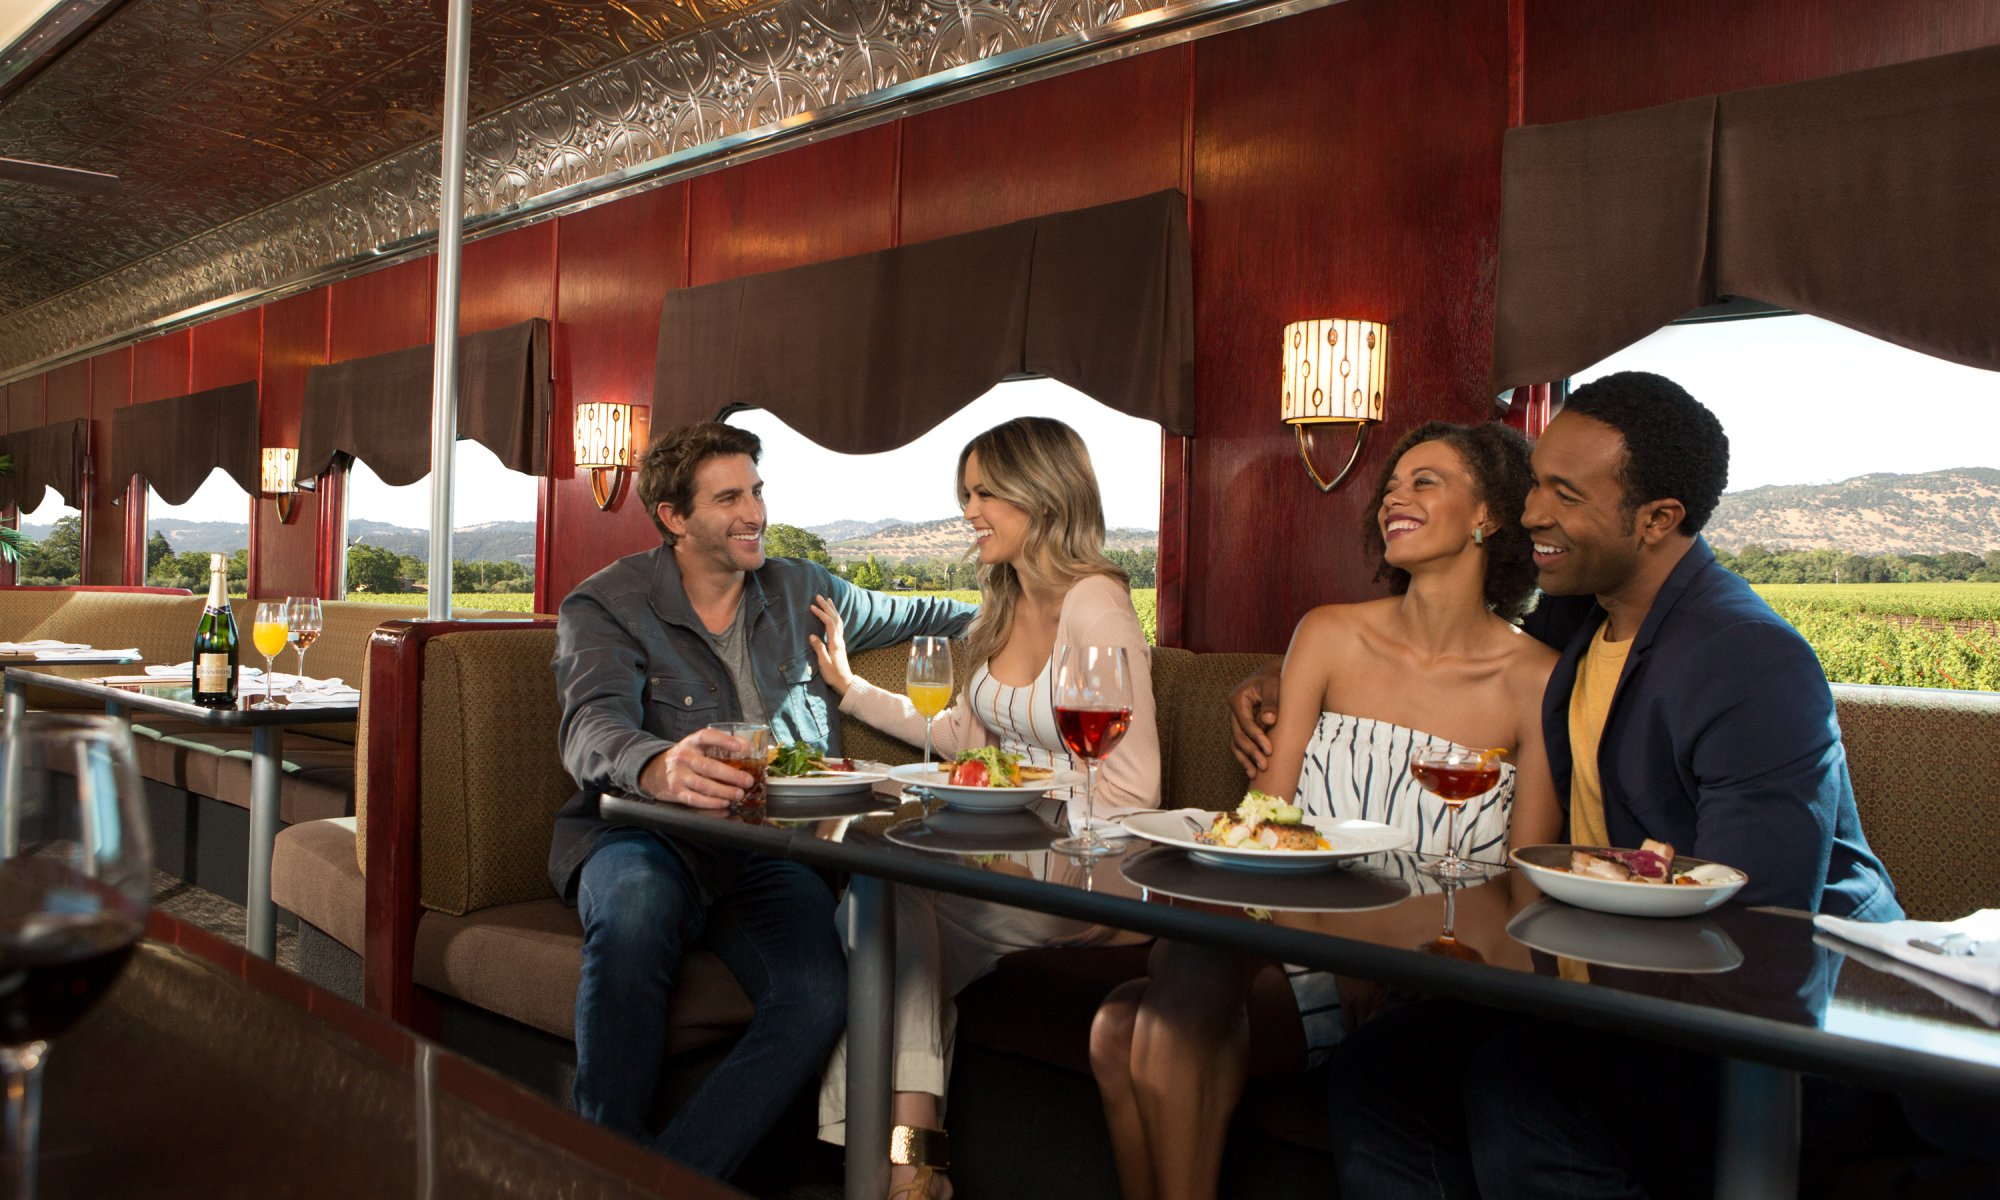 4 people enjoying a meal and glass of wine aboard the Napa Valley Wine Train